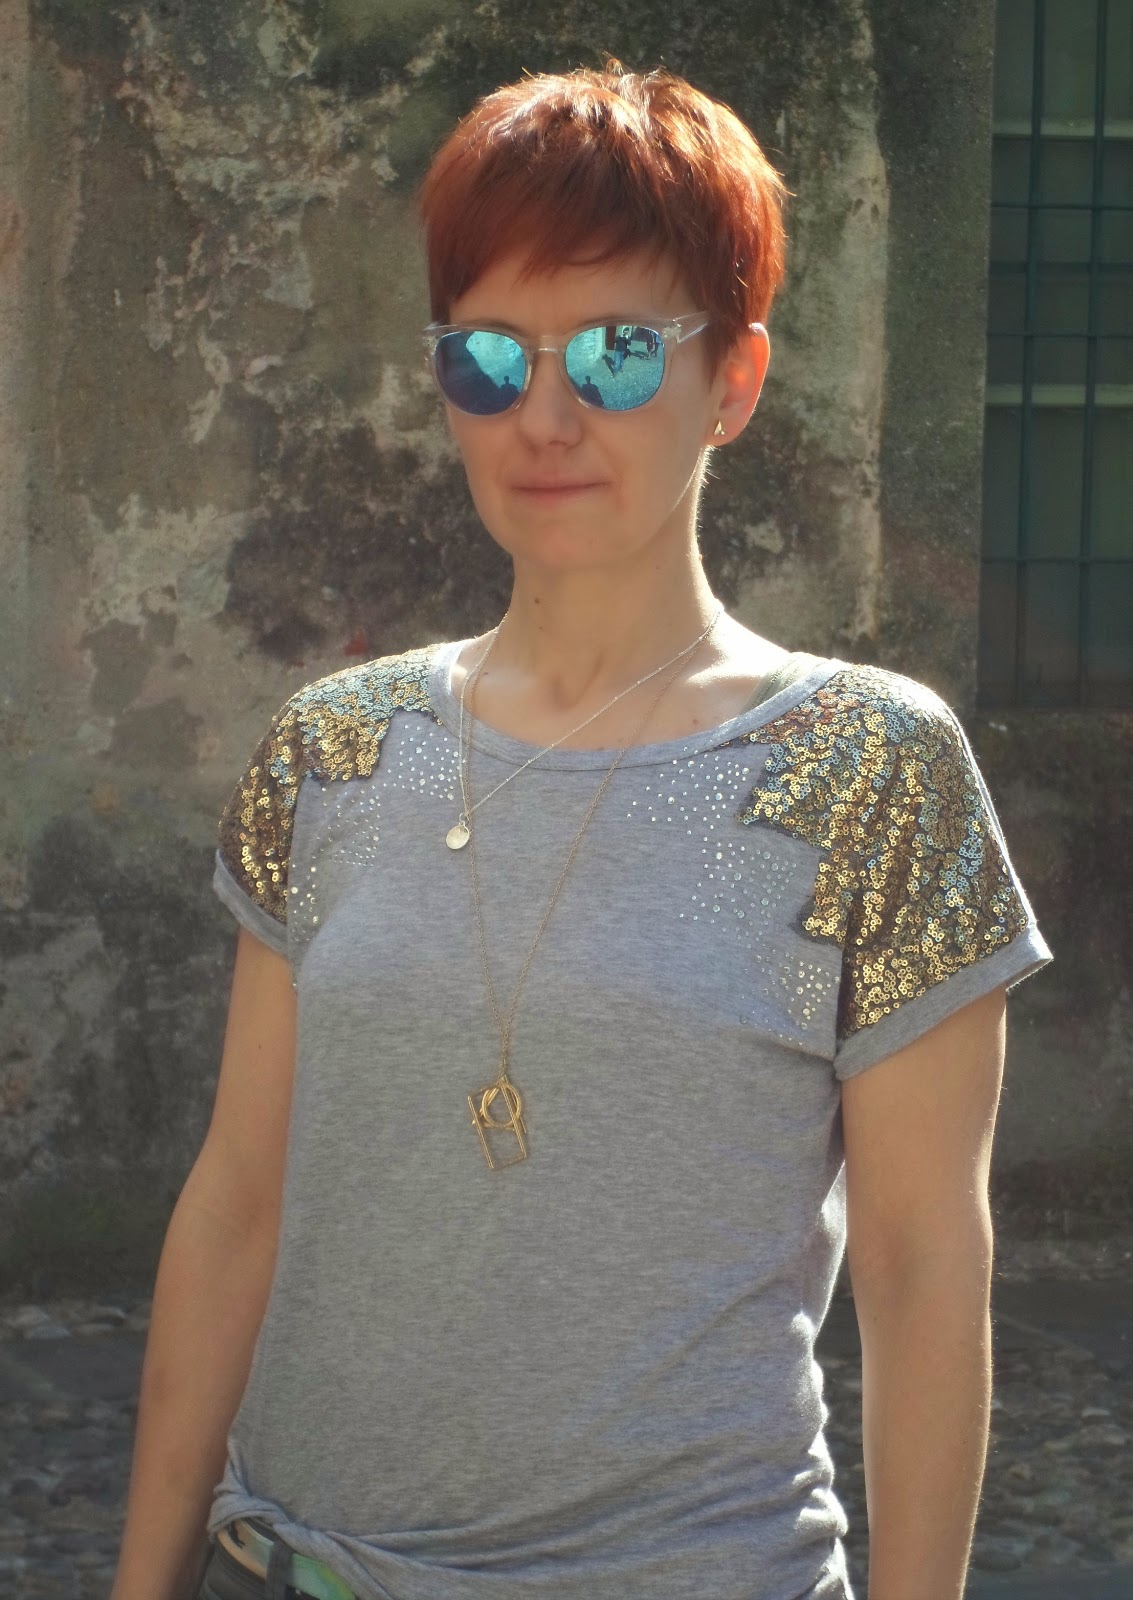 Sequin Shirt, Grey Skinnies, Black Bag, Mirror Sunglasses at Iseo, Lake Iseo   Sparkle and Mirrors - Sequins for Sunday, Funky Jungle, fashion & personal style blog